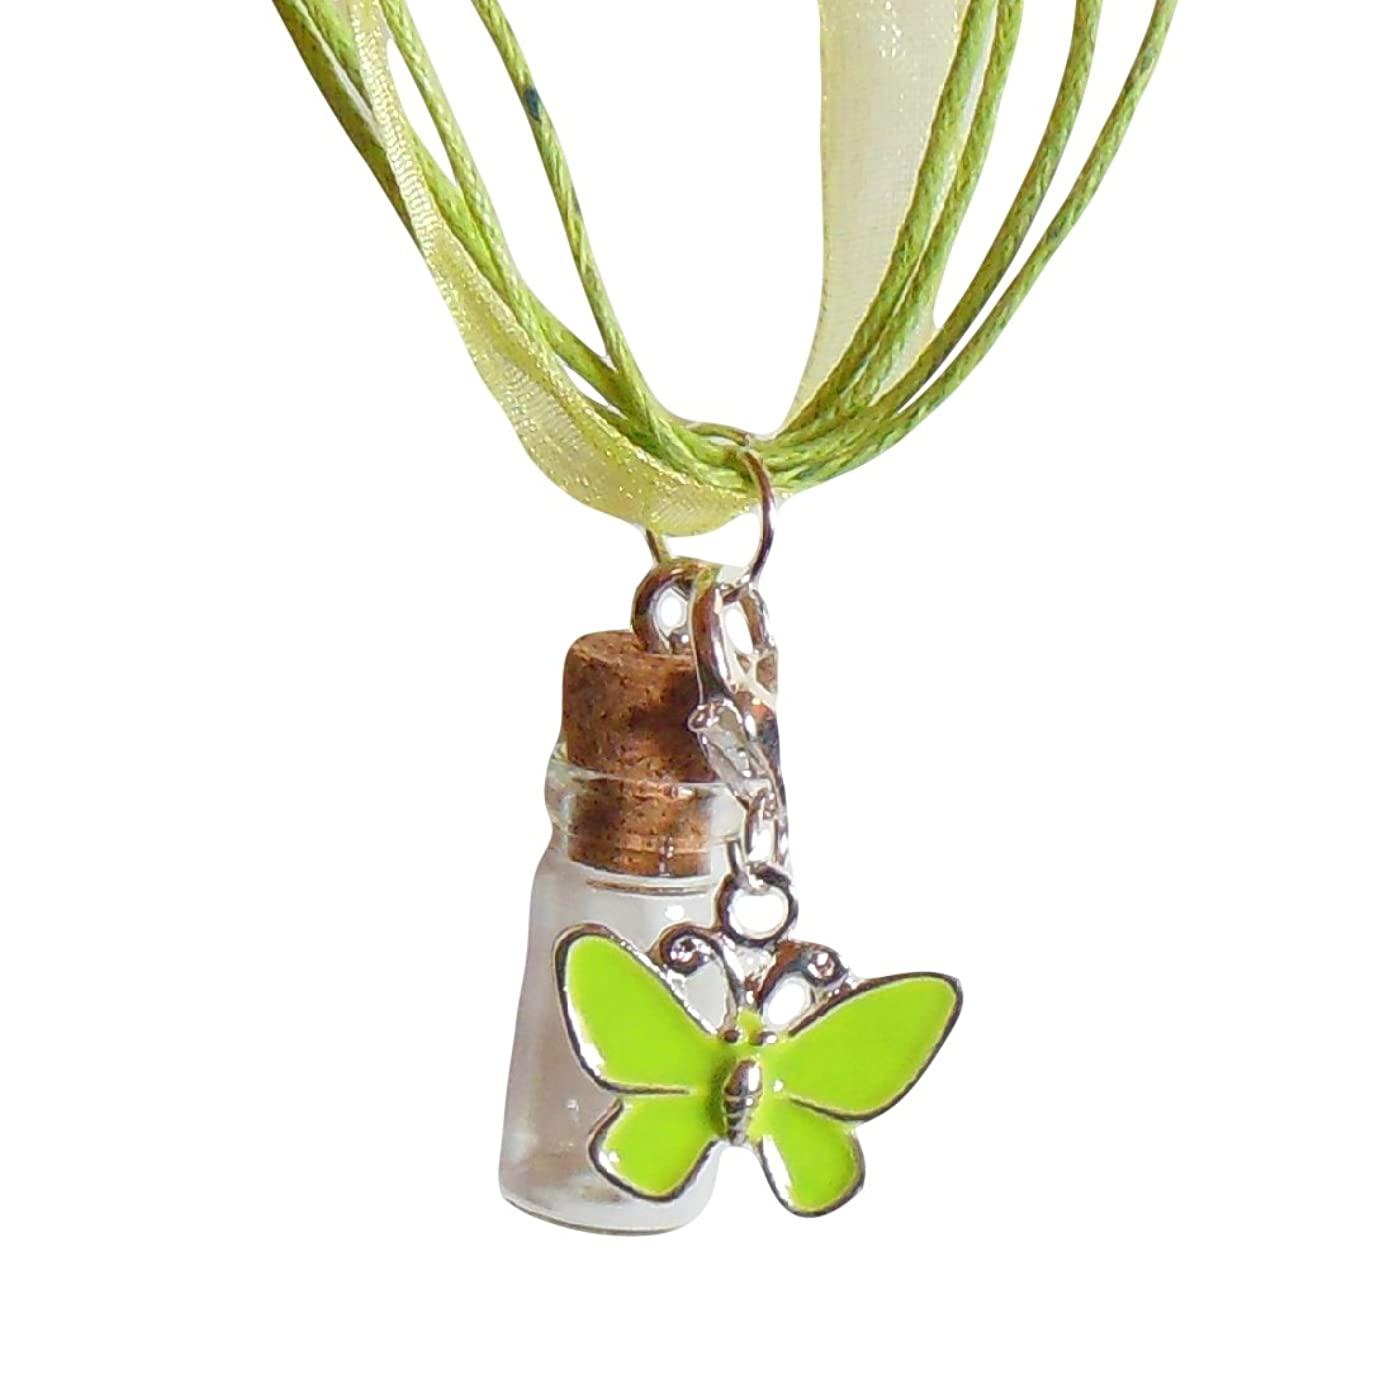 Mini Bottle Necklace Craft Party Favor Kit - Set of 10 - Organza Ribbon Necklaces, Charms, Mini Glass Cork Top Bottles (Green)